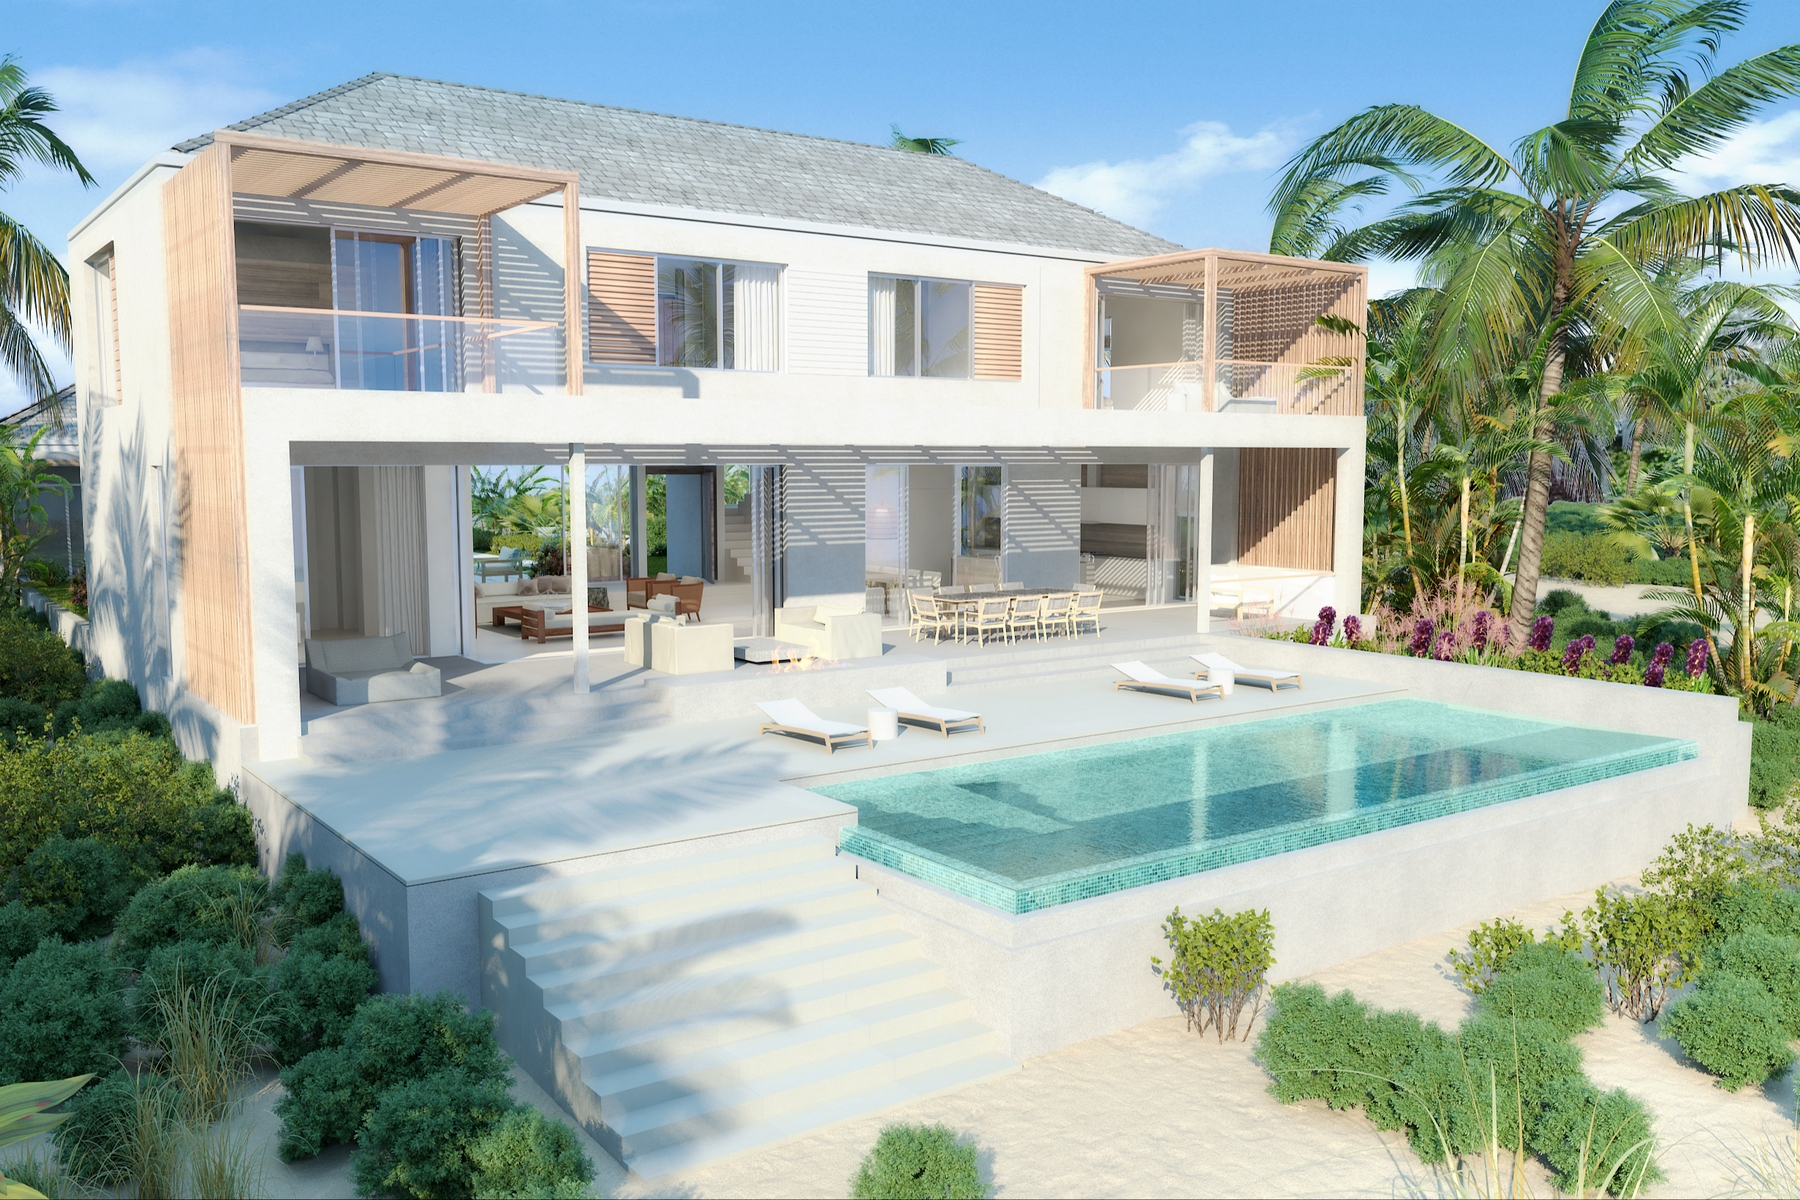 Single Family Home for Sale at BEACH ENCLAVE LONG BAY - Design Two Beachfront Long Bay, TCI Turks And Caicos Islands